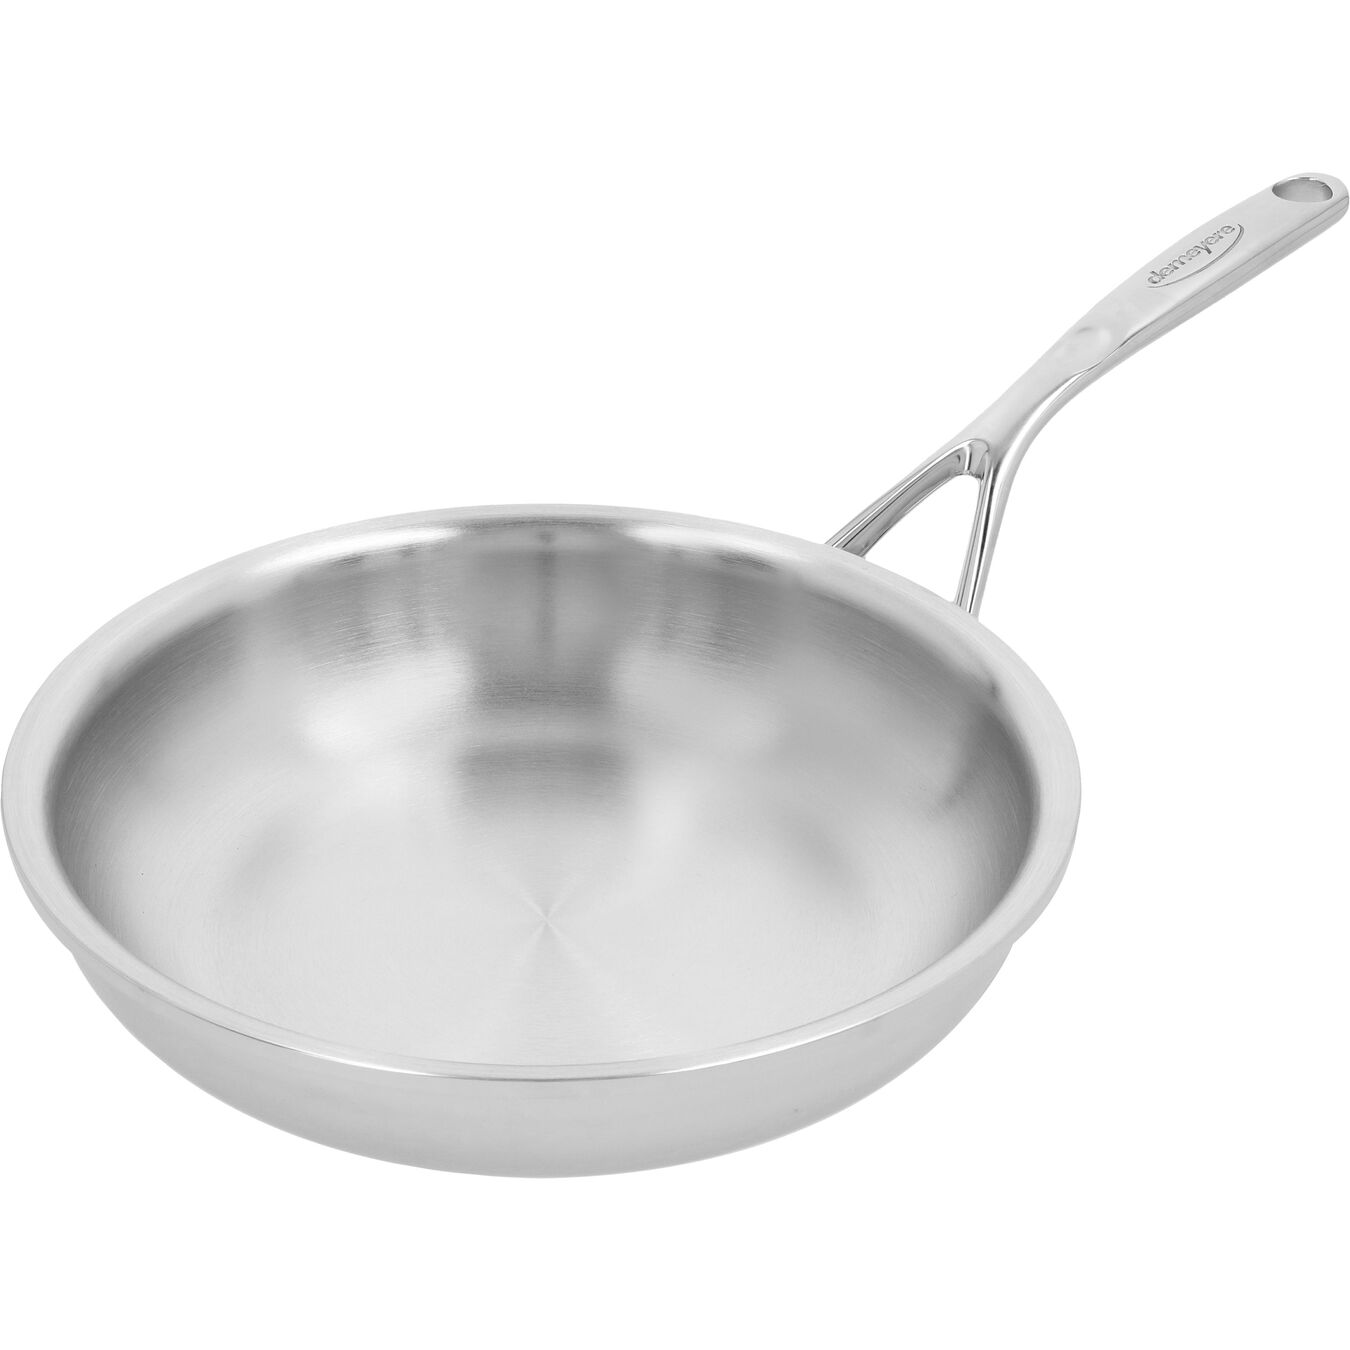 9-inch, 18/10 Stainless Steel, Proline Fry Pan,,large 4